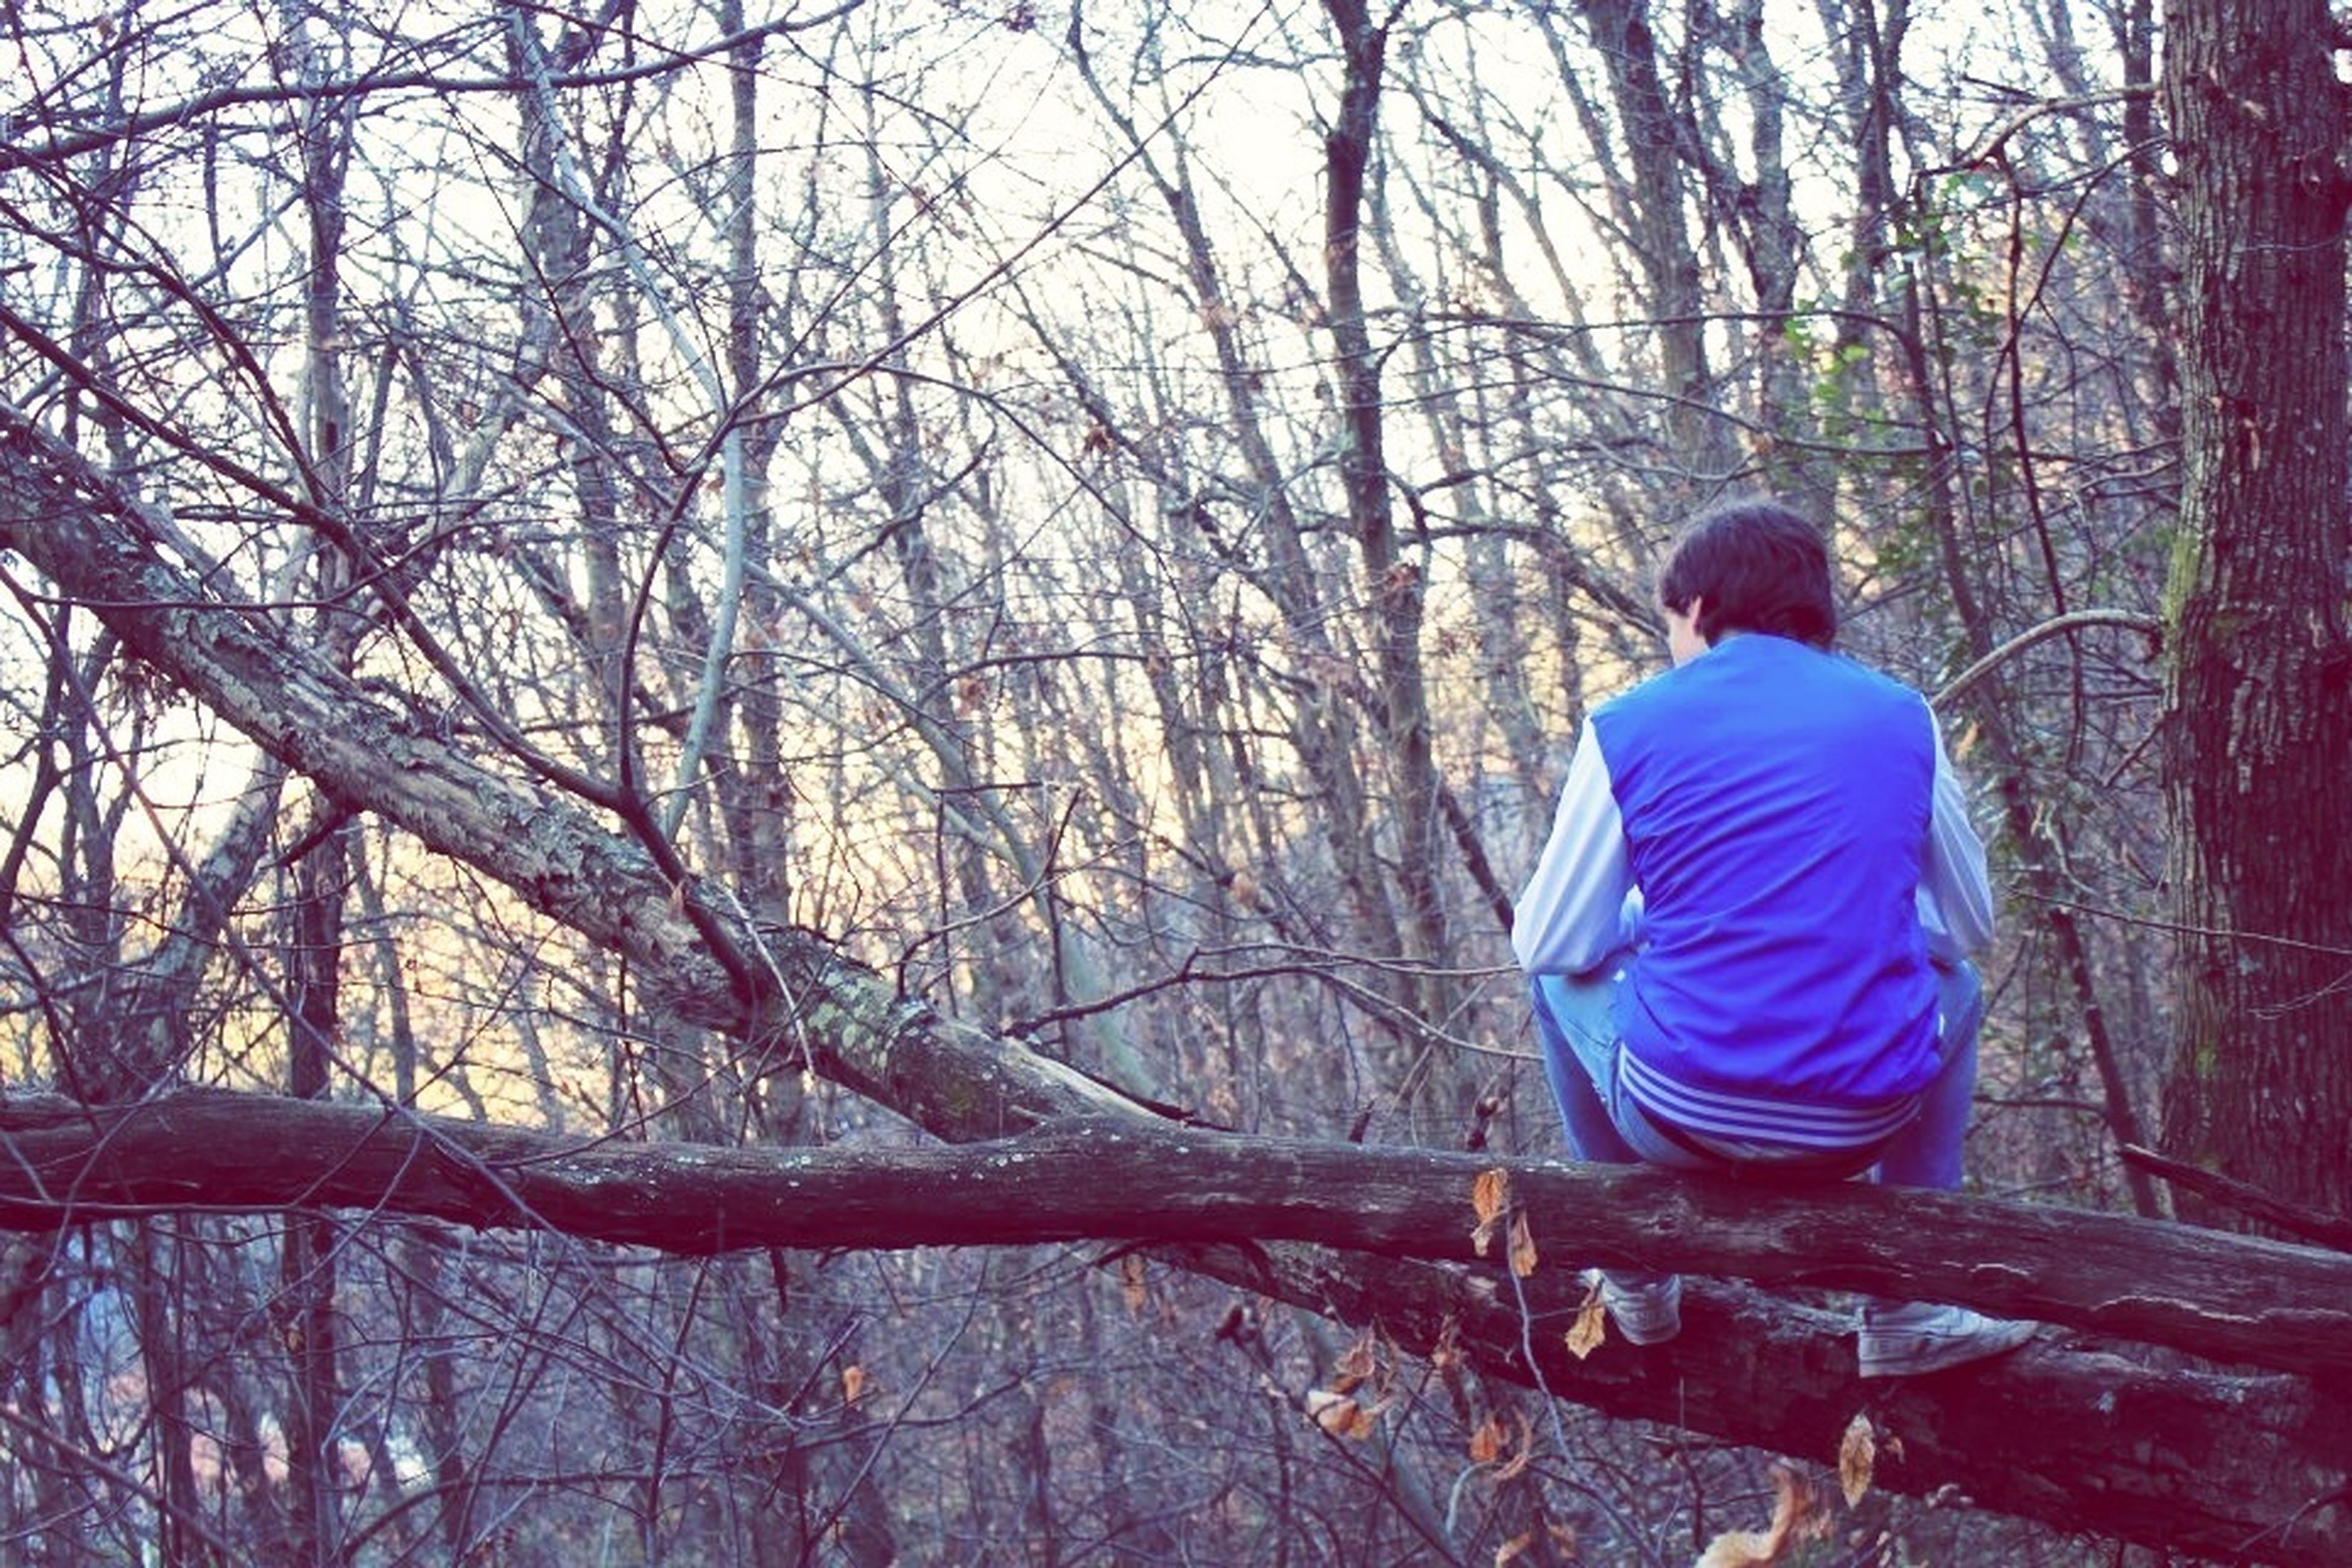 tree, bare tree, leisure activity, lifestyles, rear view, full length, branch, tree trunk, men, tranquility, casual clothing, standing, nature, sitting, tranquil scene, beauty in nature, forest, three quarter length